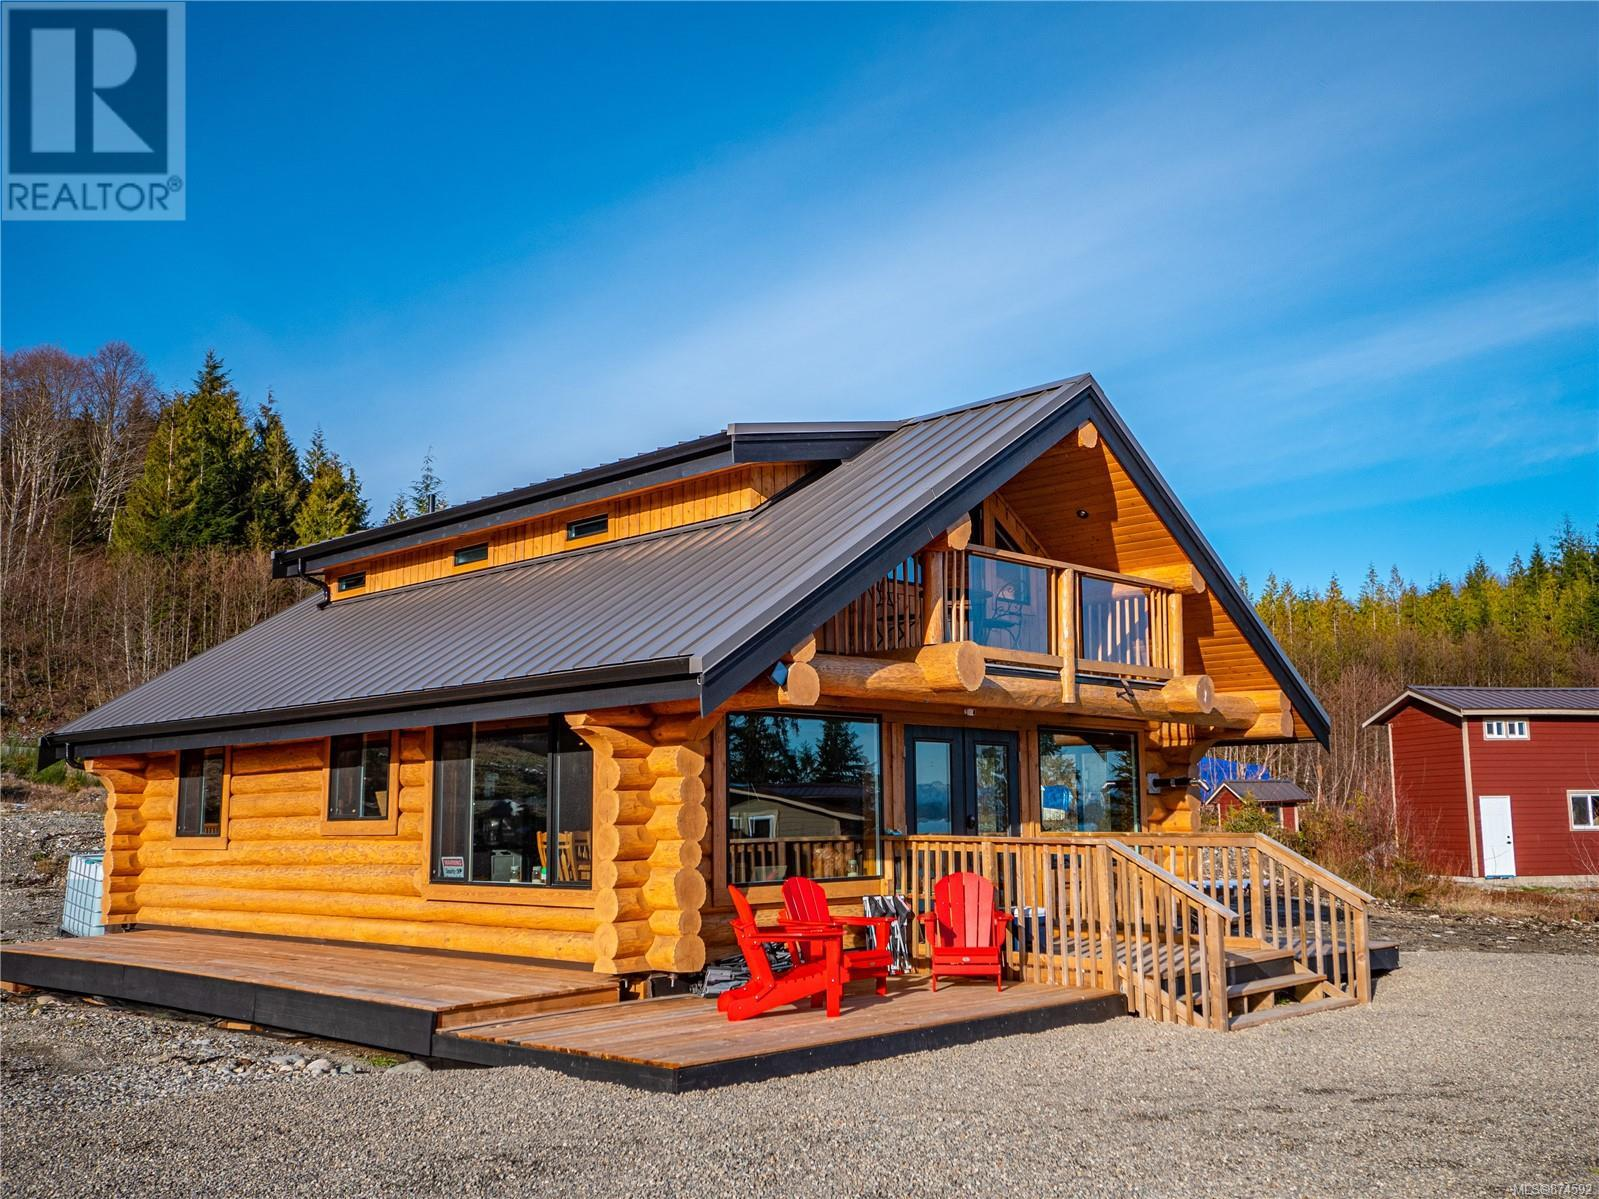 MLS® #874592 - Ucluelet House For sale Image #1